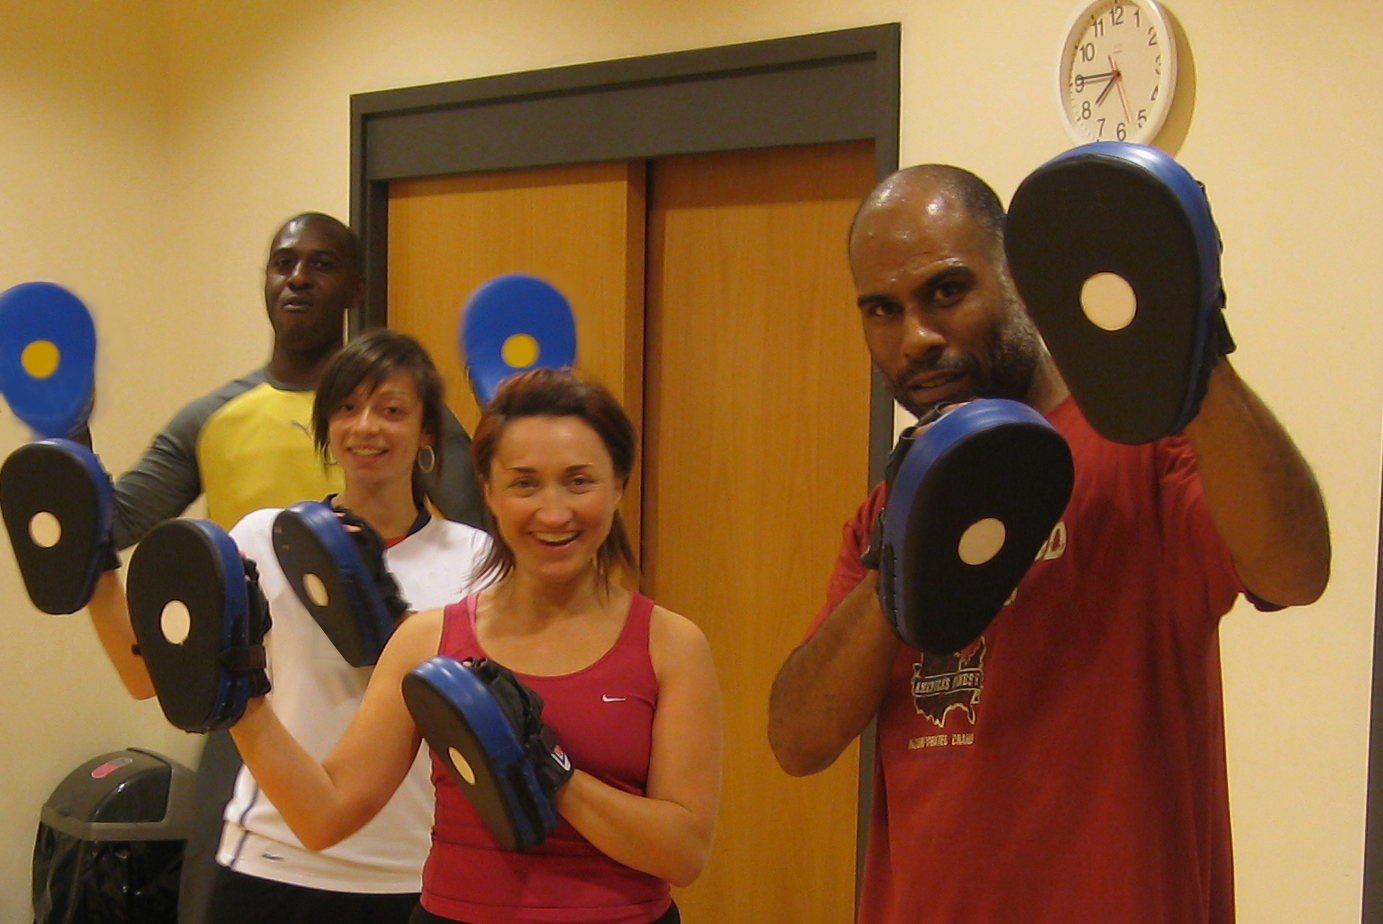 Boxercise - Sports In You